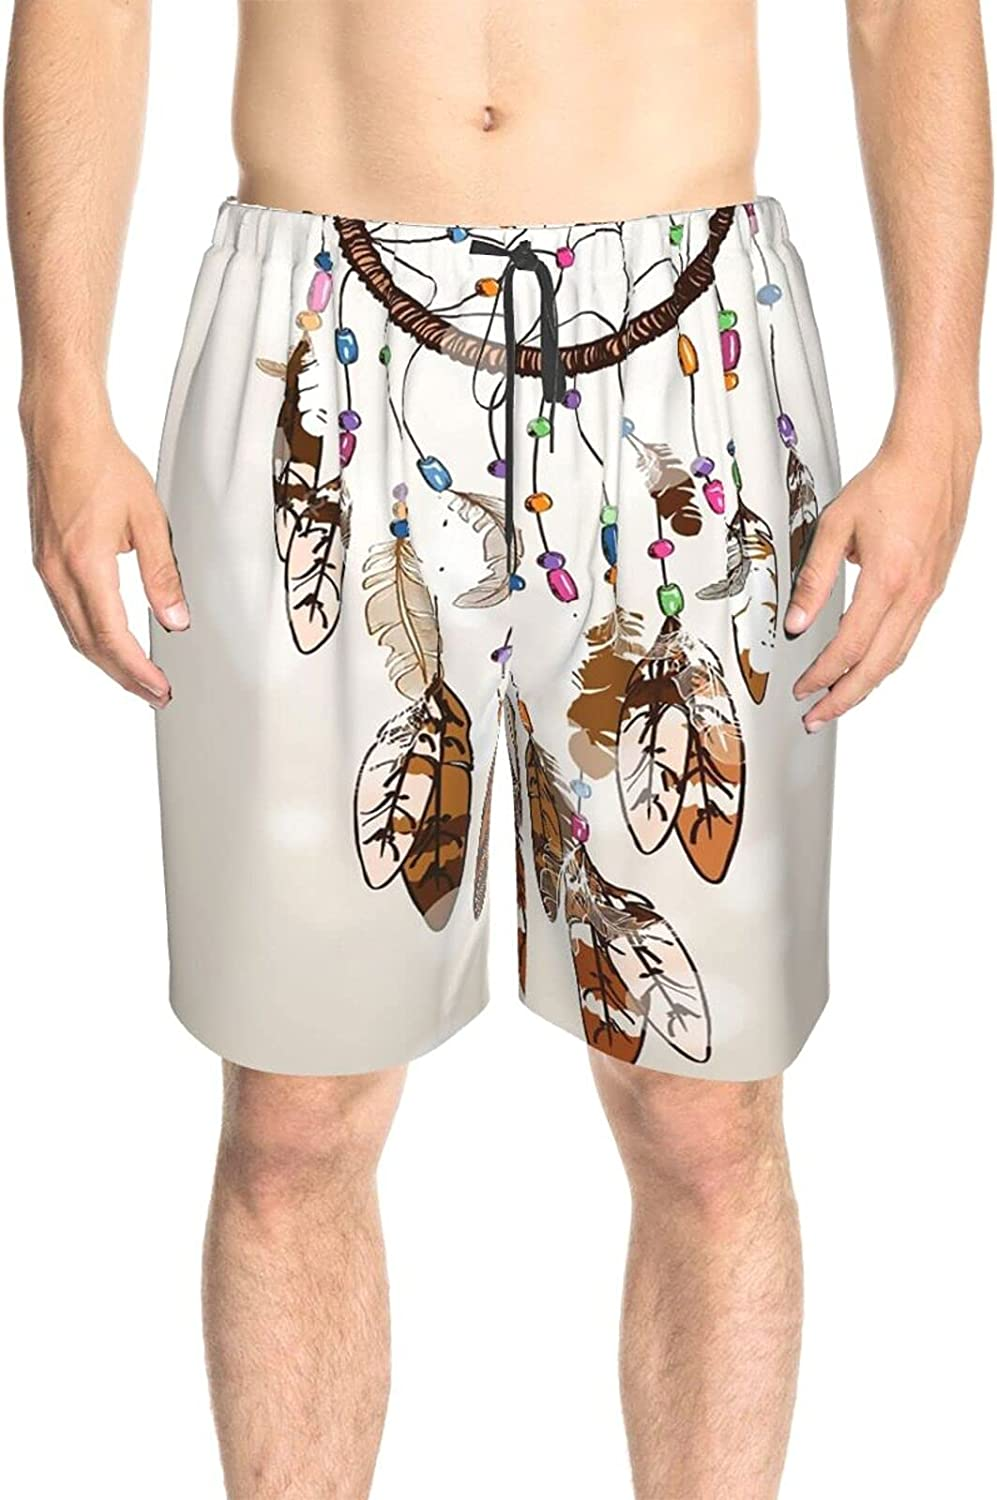 JINJUELS Men's Swim Trunks Indian Feather Catcher Swim Short Boardshort Quick Dry Cool Swimming Trunks with Mesh Lining